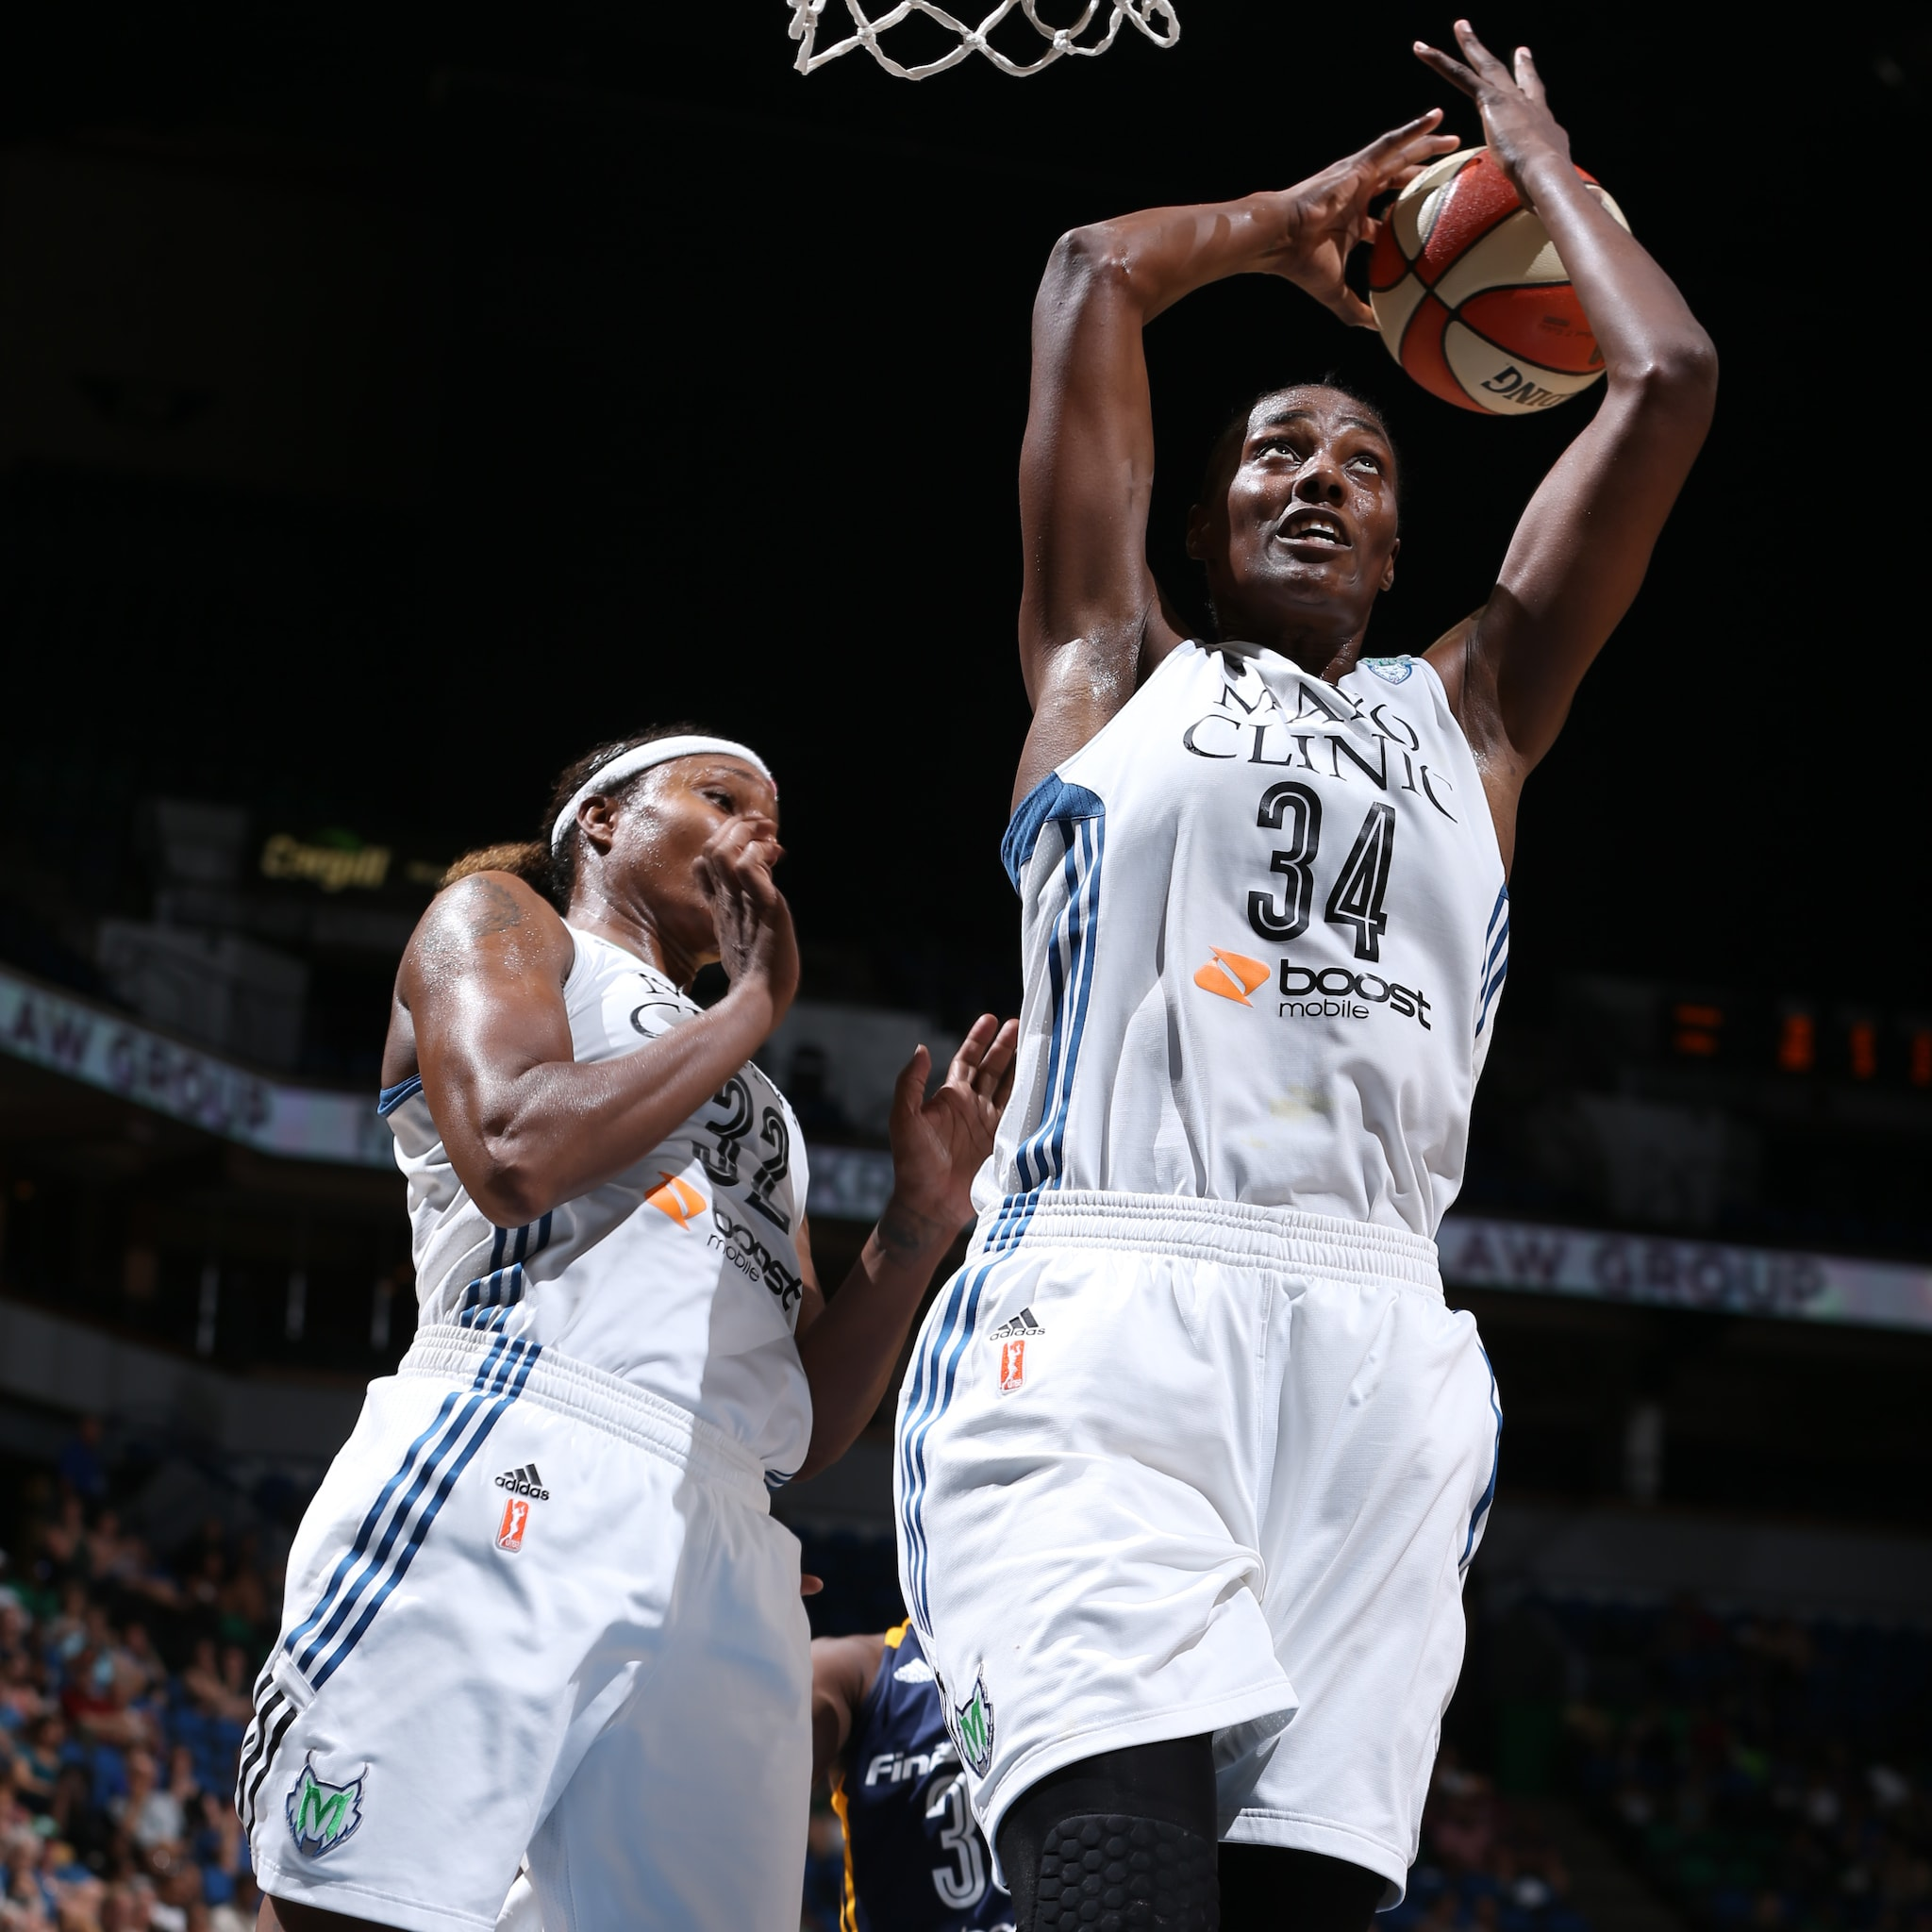 The other half of Minnesota's dynamic frontcourt duo, Sylvia Fowles, was near unstoppable on Friday night, finishing with a game-high 18 points and game-high 14 rebounds to go with her two steals and two blocked shots.